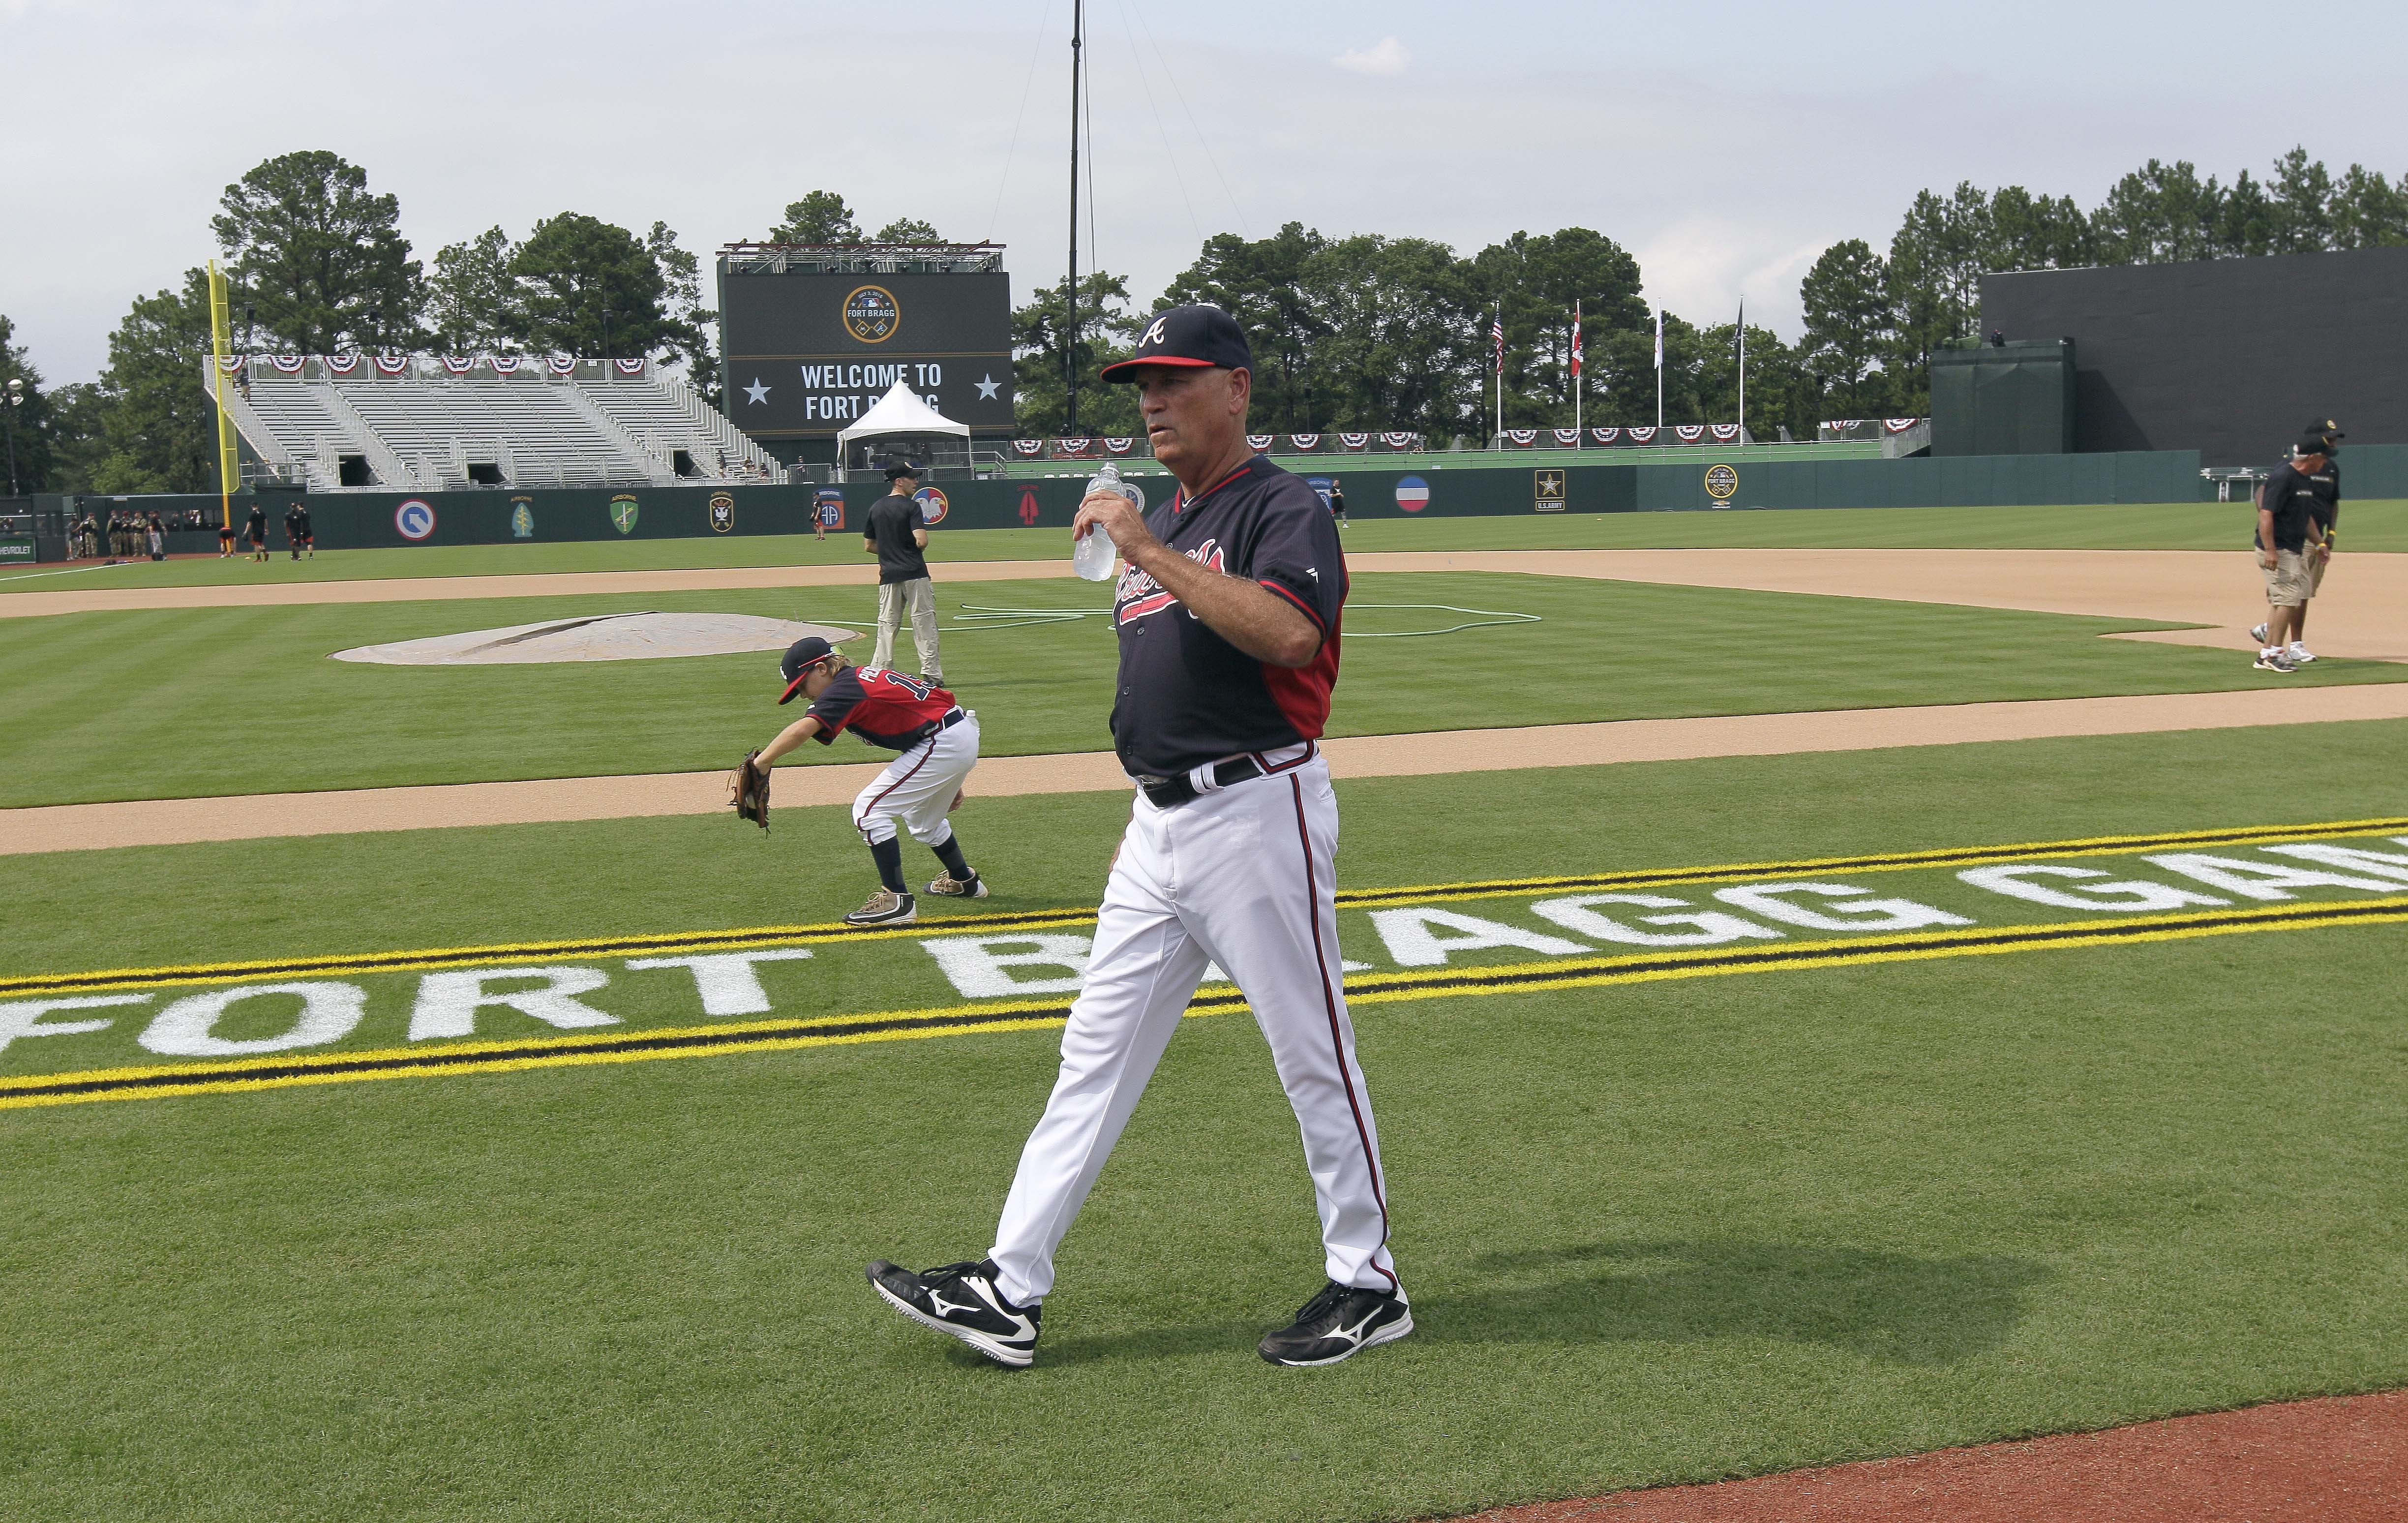 Atlanta Braves interim manager Brian Snitker (43) walks along the newly built baseball field prior to a game against the Miami Marlins in Fort Bragg, N.C., Sunday, July 3, 2016. (AP Photo/Gerry Broome)